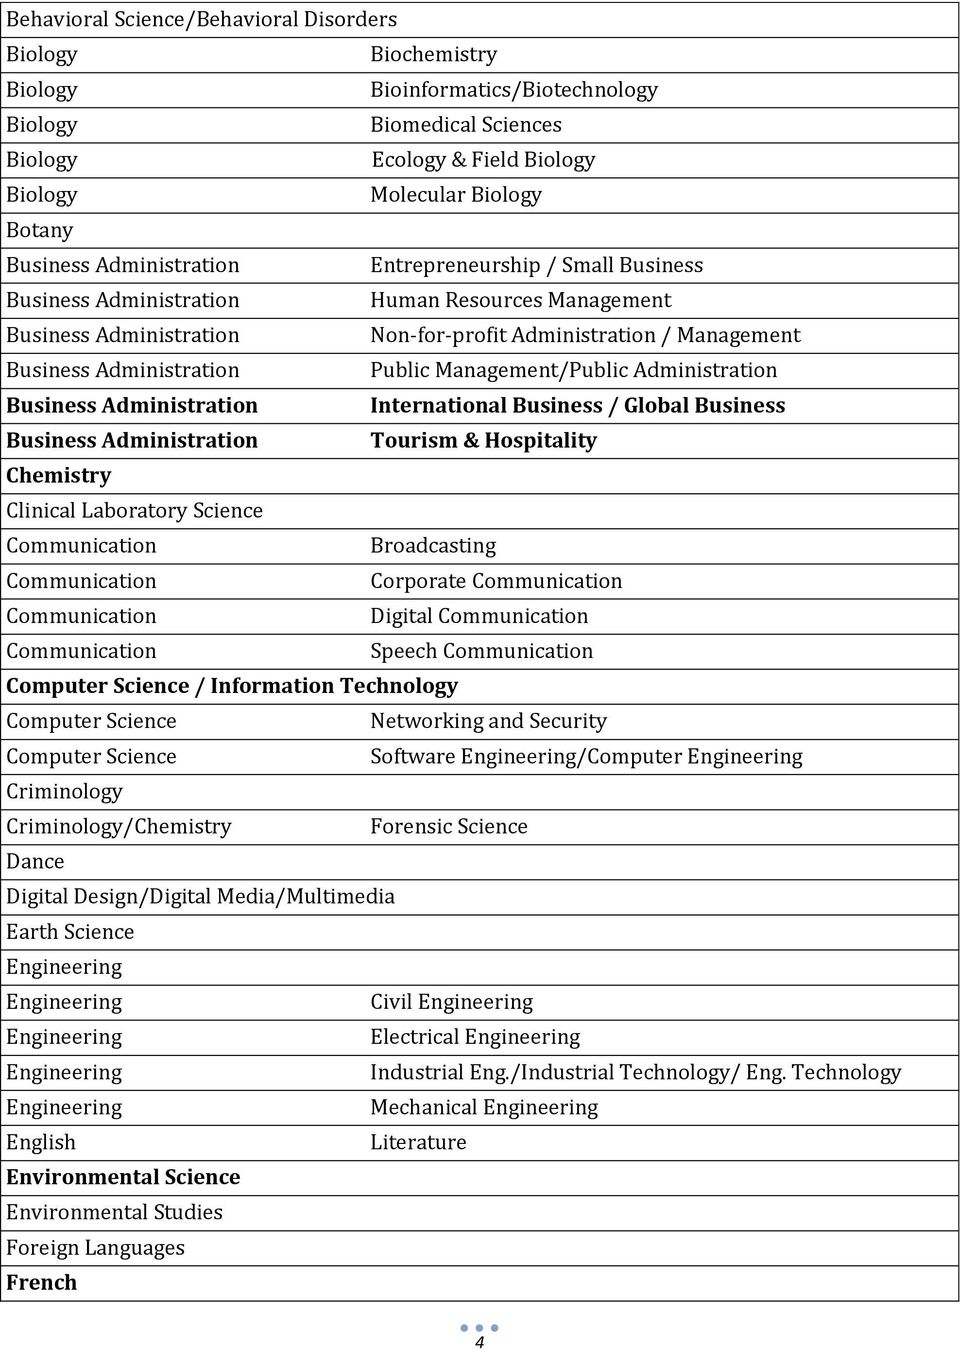 Corporate Digital Speech Computer Science / Information Technology Computer Science Networking and Security Computer Science Software /Computer Criminology Criminology/Chemistry Forensic Science